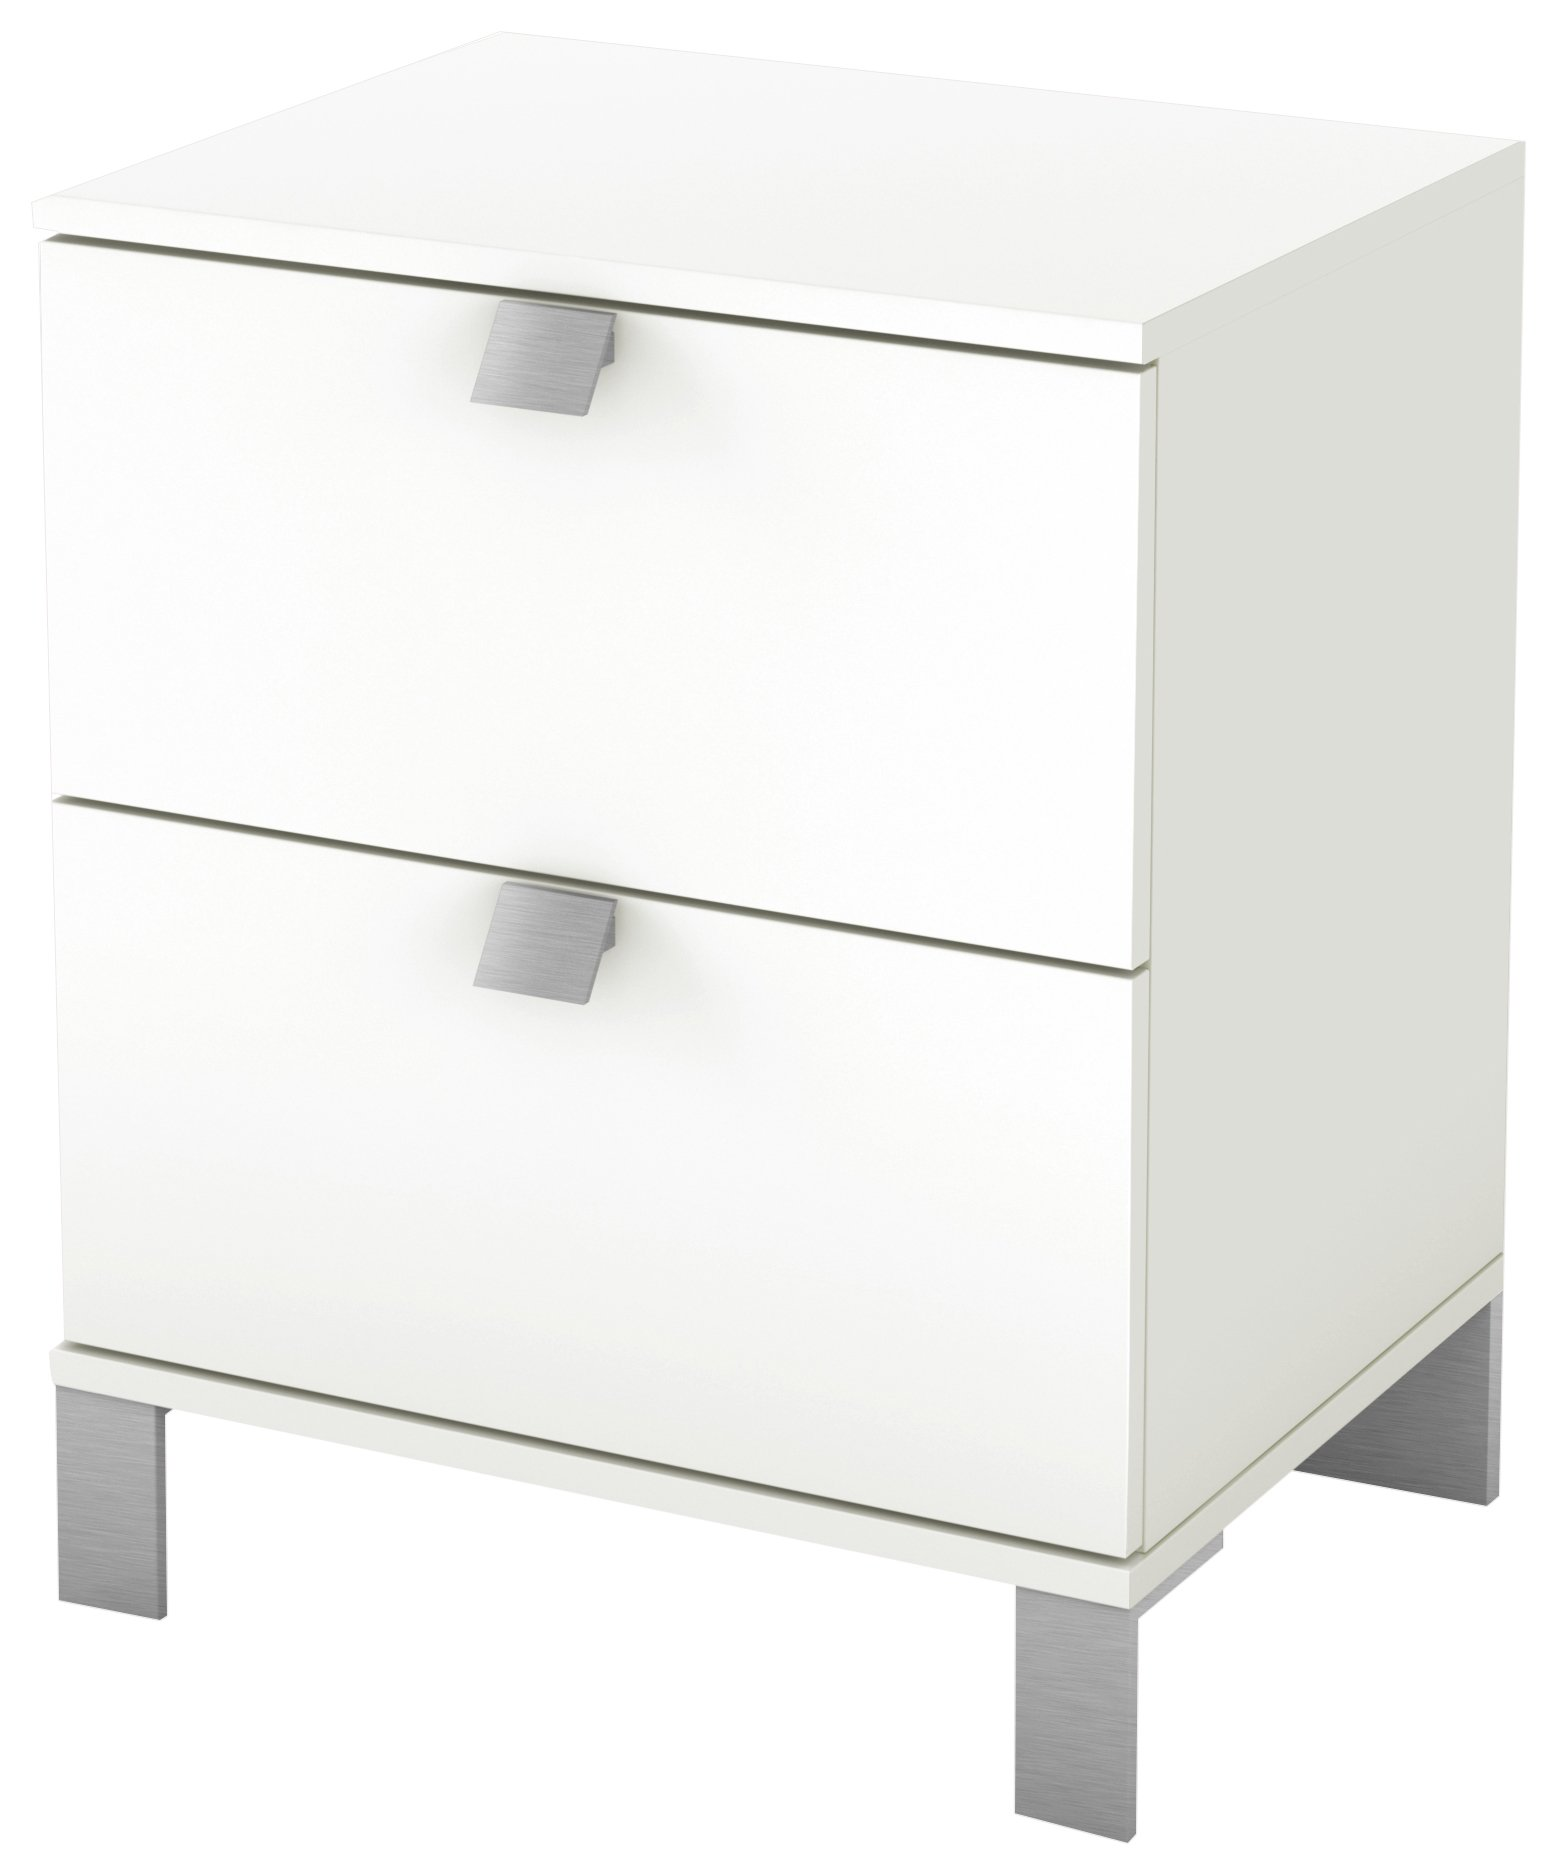 South Shore Spark Collection 2-Drawer Nightstand, Pure White with Satin Nickel Handles